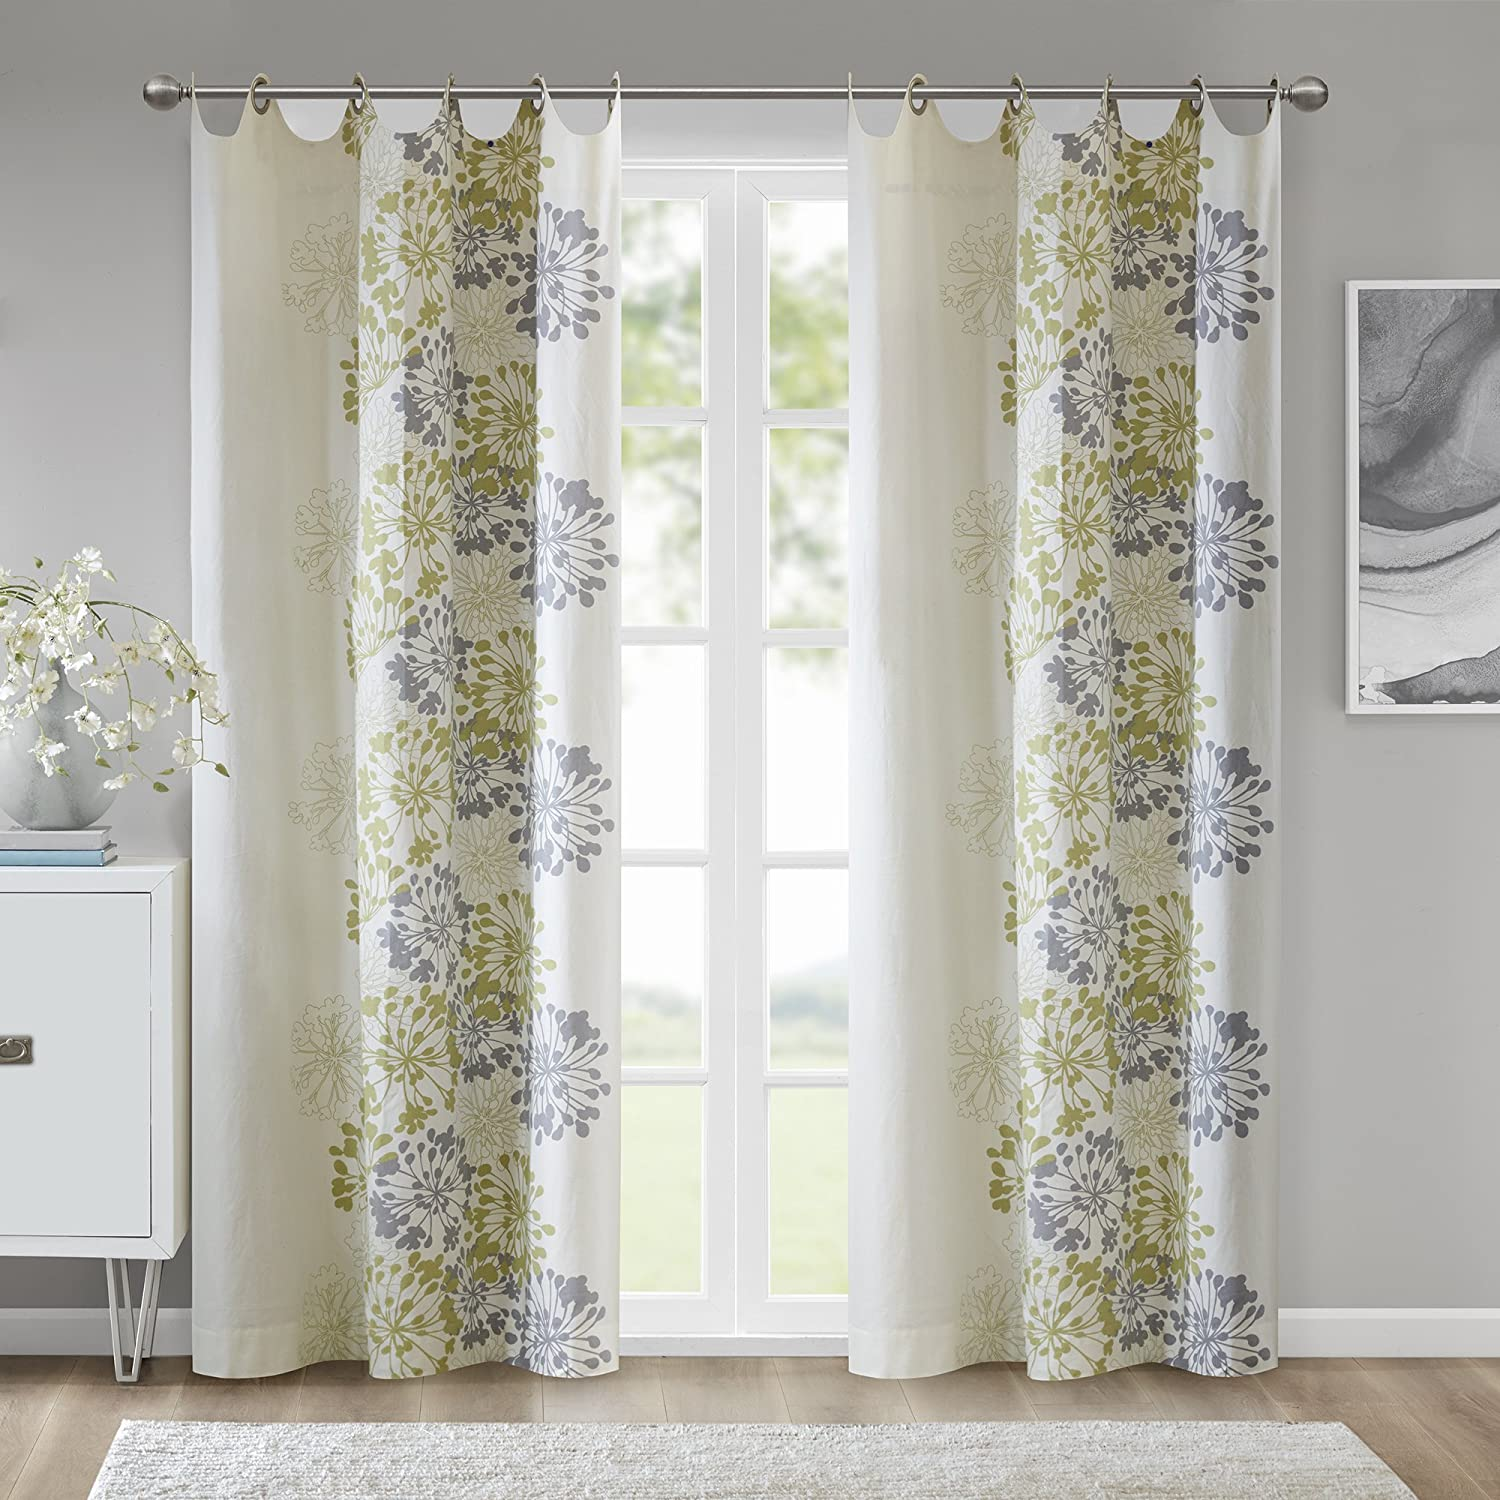 Modern Contemporary Green Curtains For Bedroom 1 Panel Pack Madison Park Win40 106 50x84 White Curtains For Living Room Print Anaya Fabric Grommet Window Curtains Home Kitchen Draperies Curtains